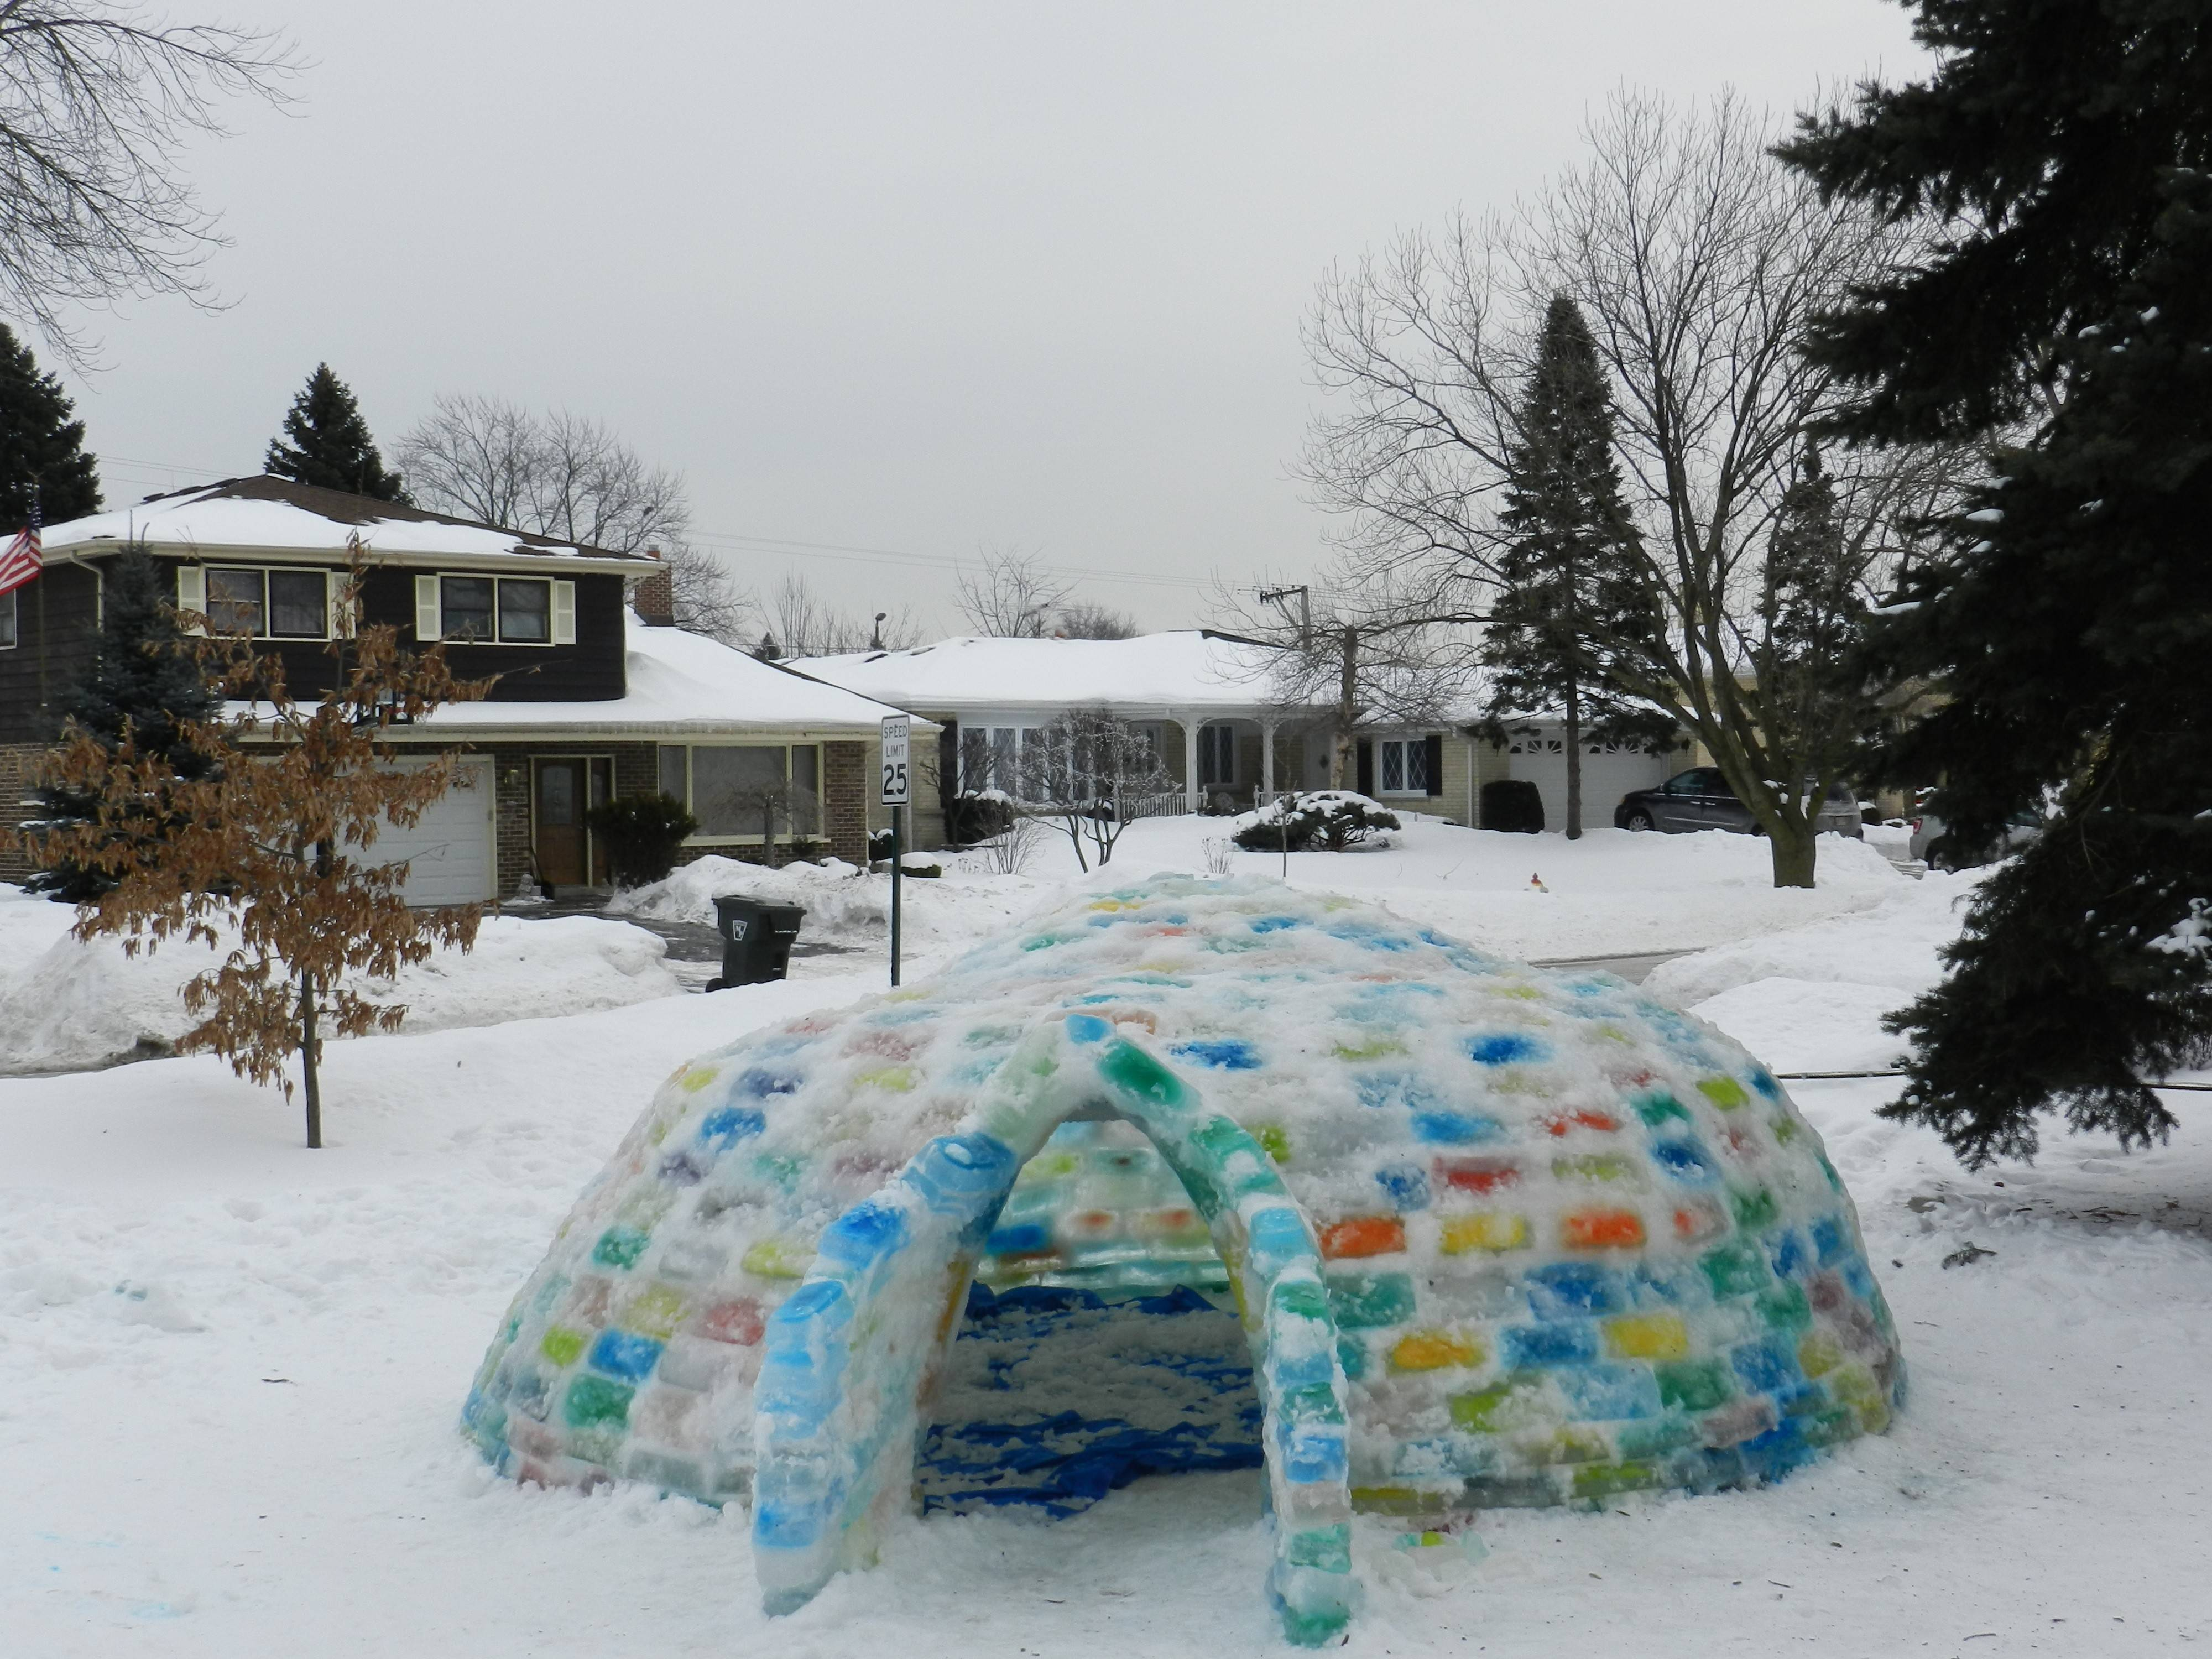 The completed igloo brought a colorful presence to the 1100 block of Thayer Street in Mount Prospect.